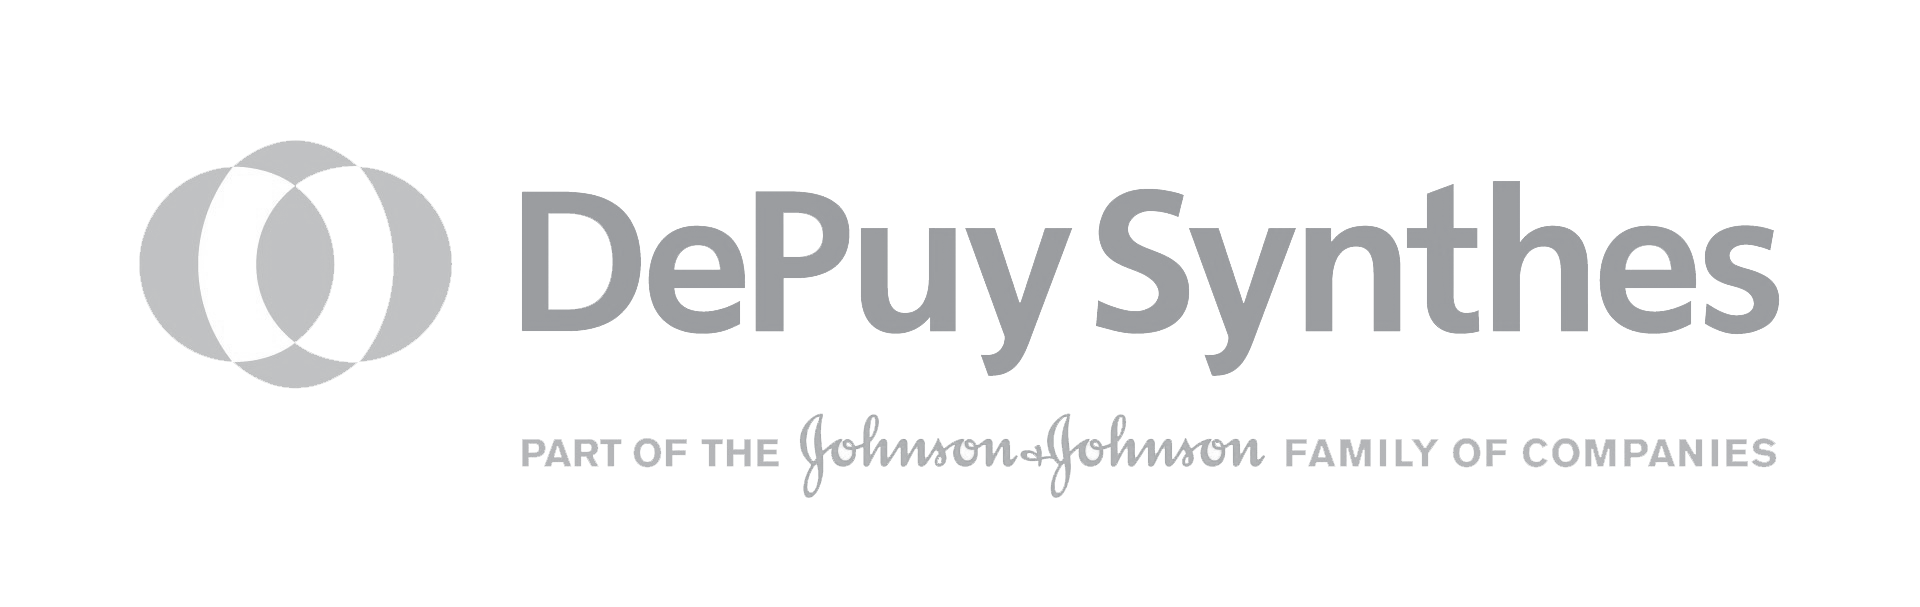 DePuy_Latest-On-website